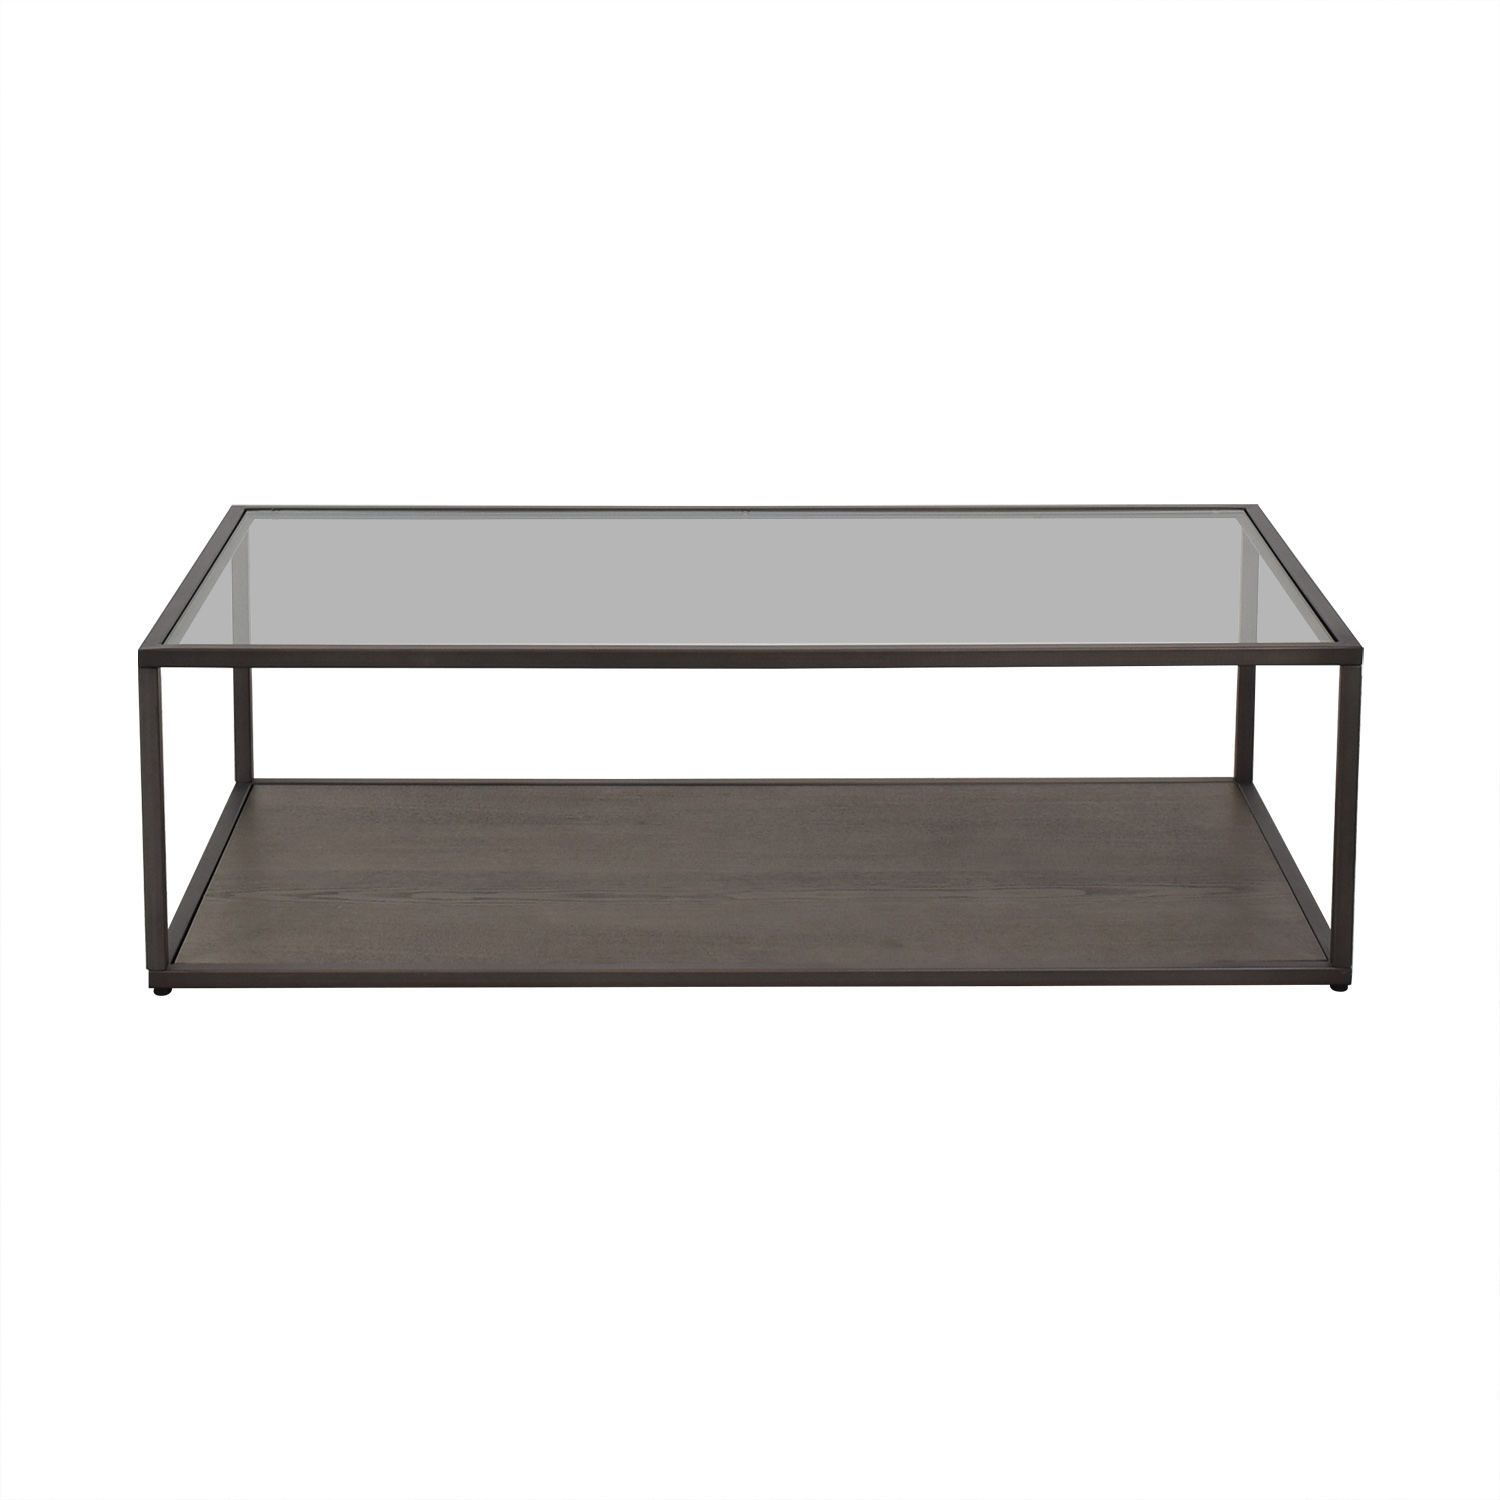 Crate & Barrel Crate & Barrel Switch Coffee Table on sale